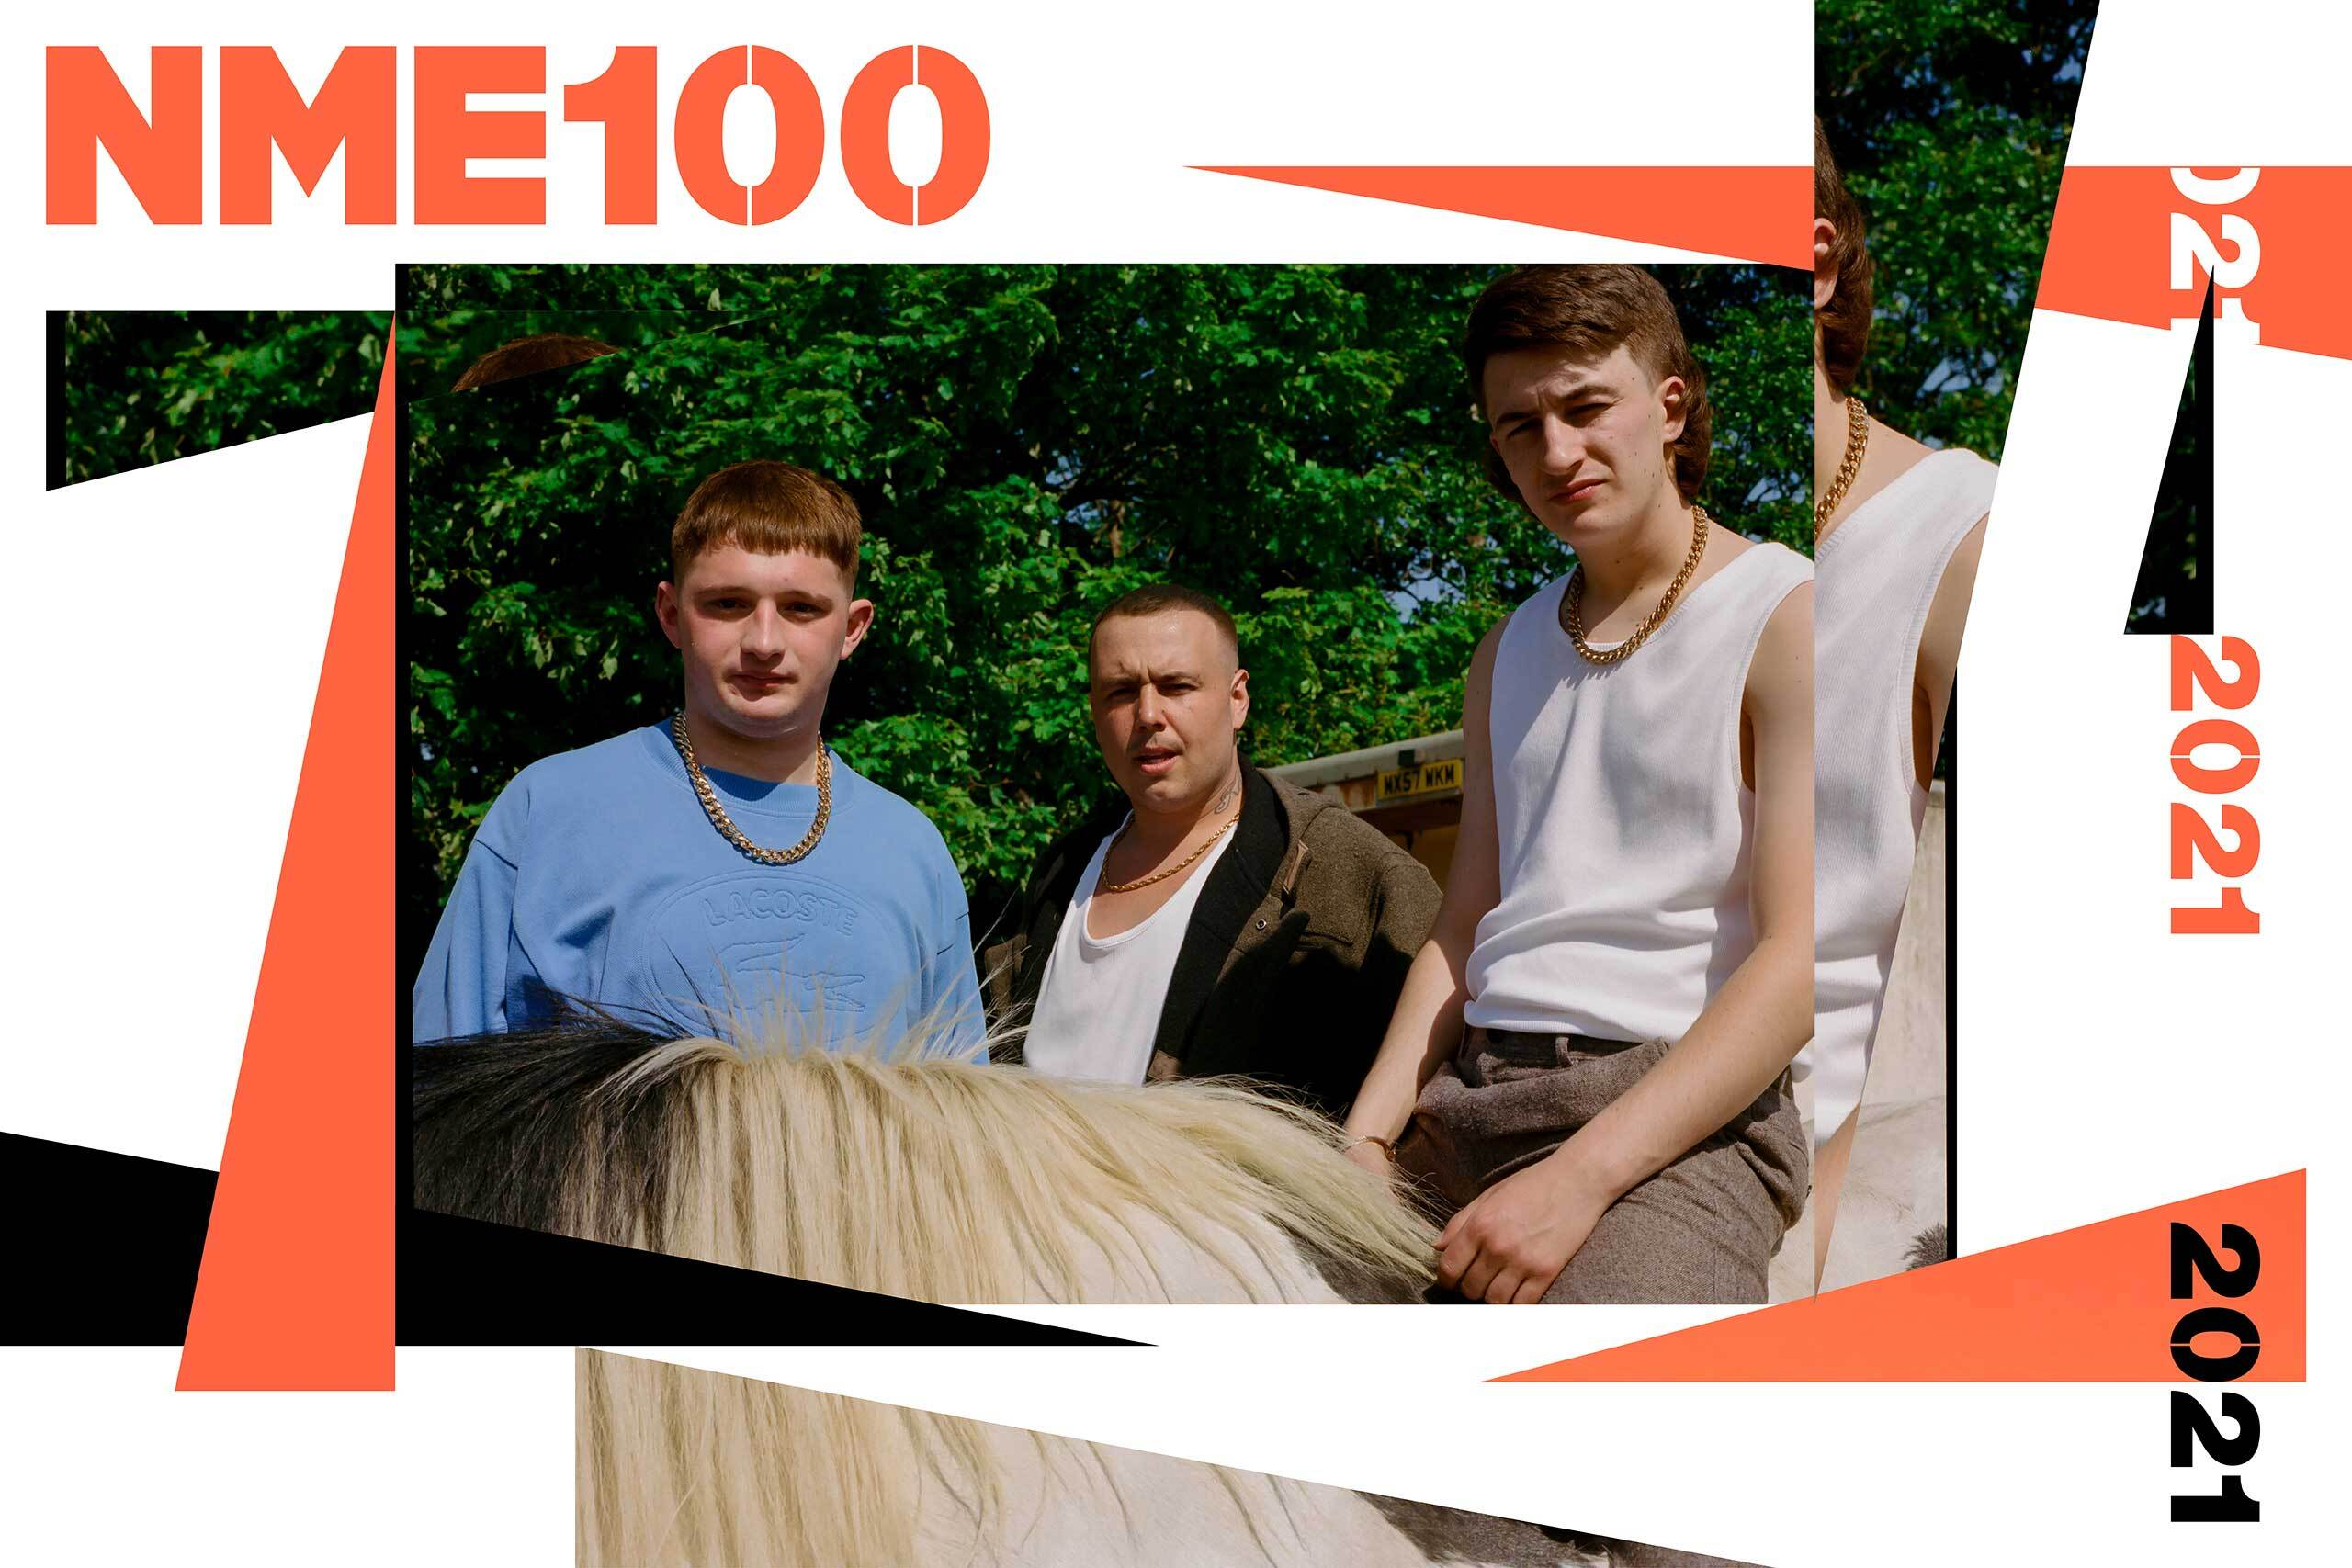 nme 100 bad boy chiller crew